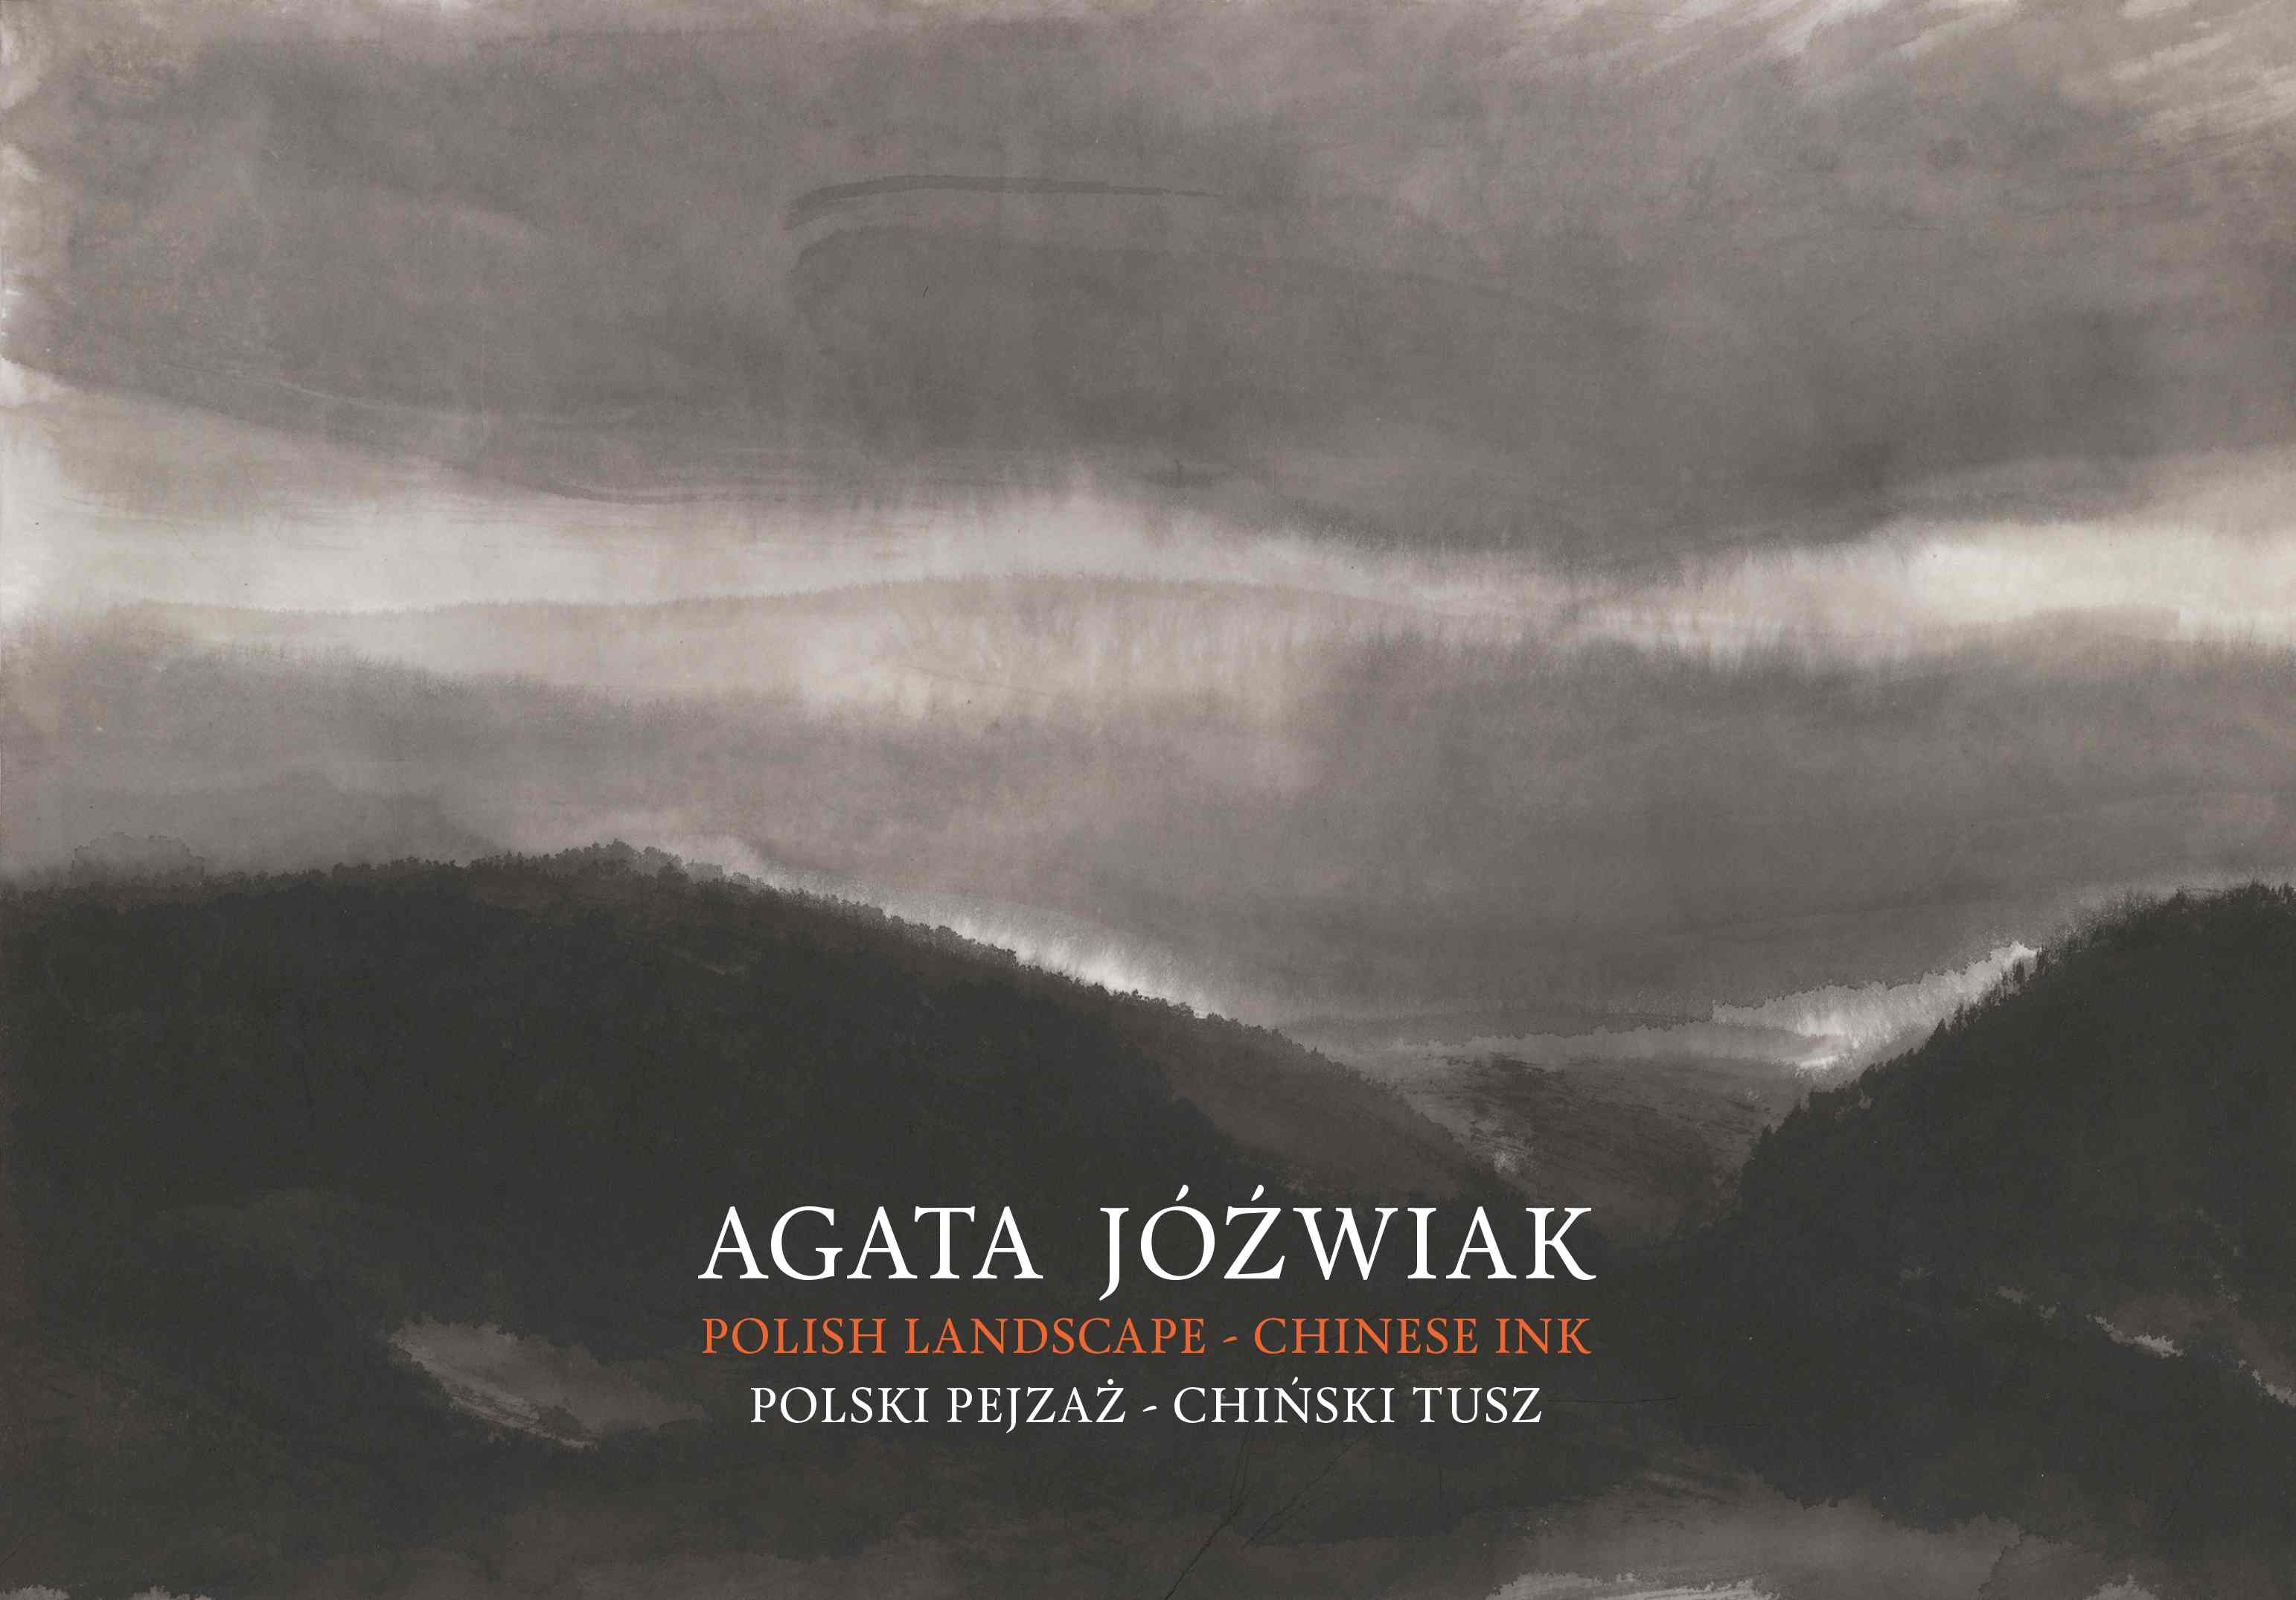 Catalogue from the exhibition Polish landscape-chinese ink, The Asia and the Pacific Museum, 2018